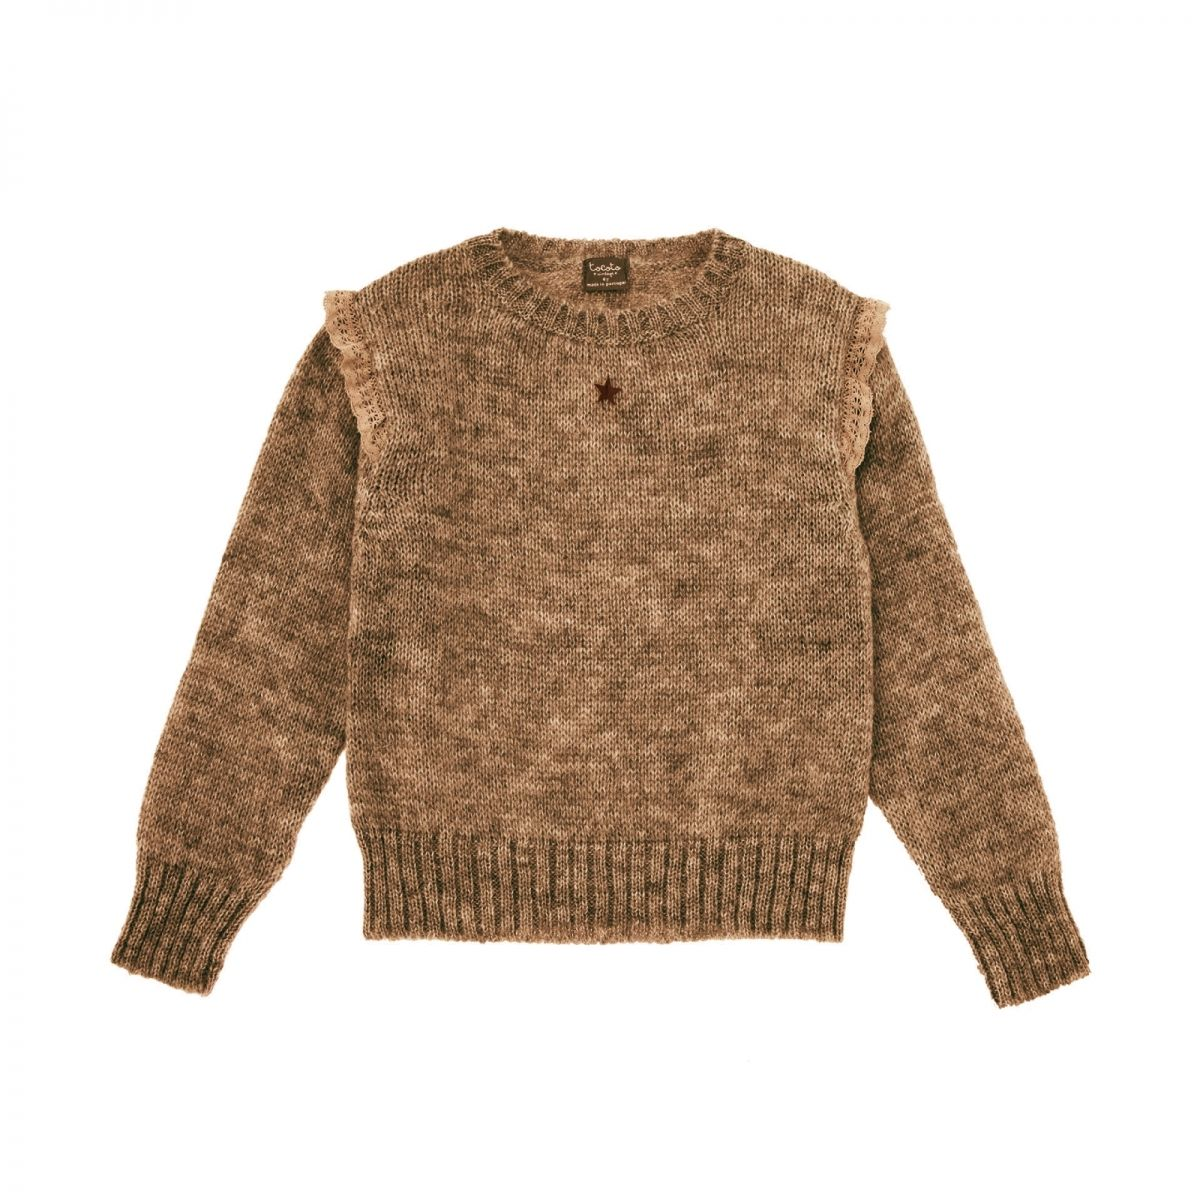 Tocoto Vintage - Knitted sweater with frills brown - 1